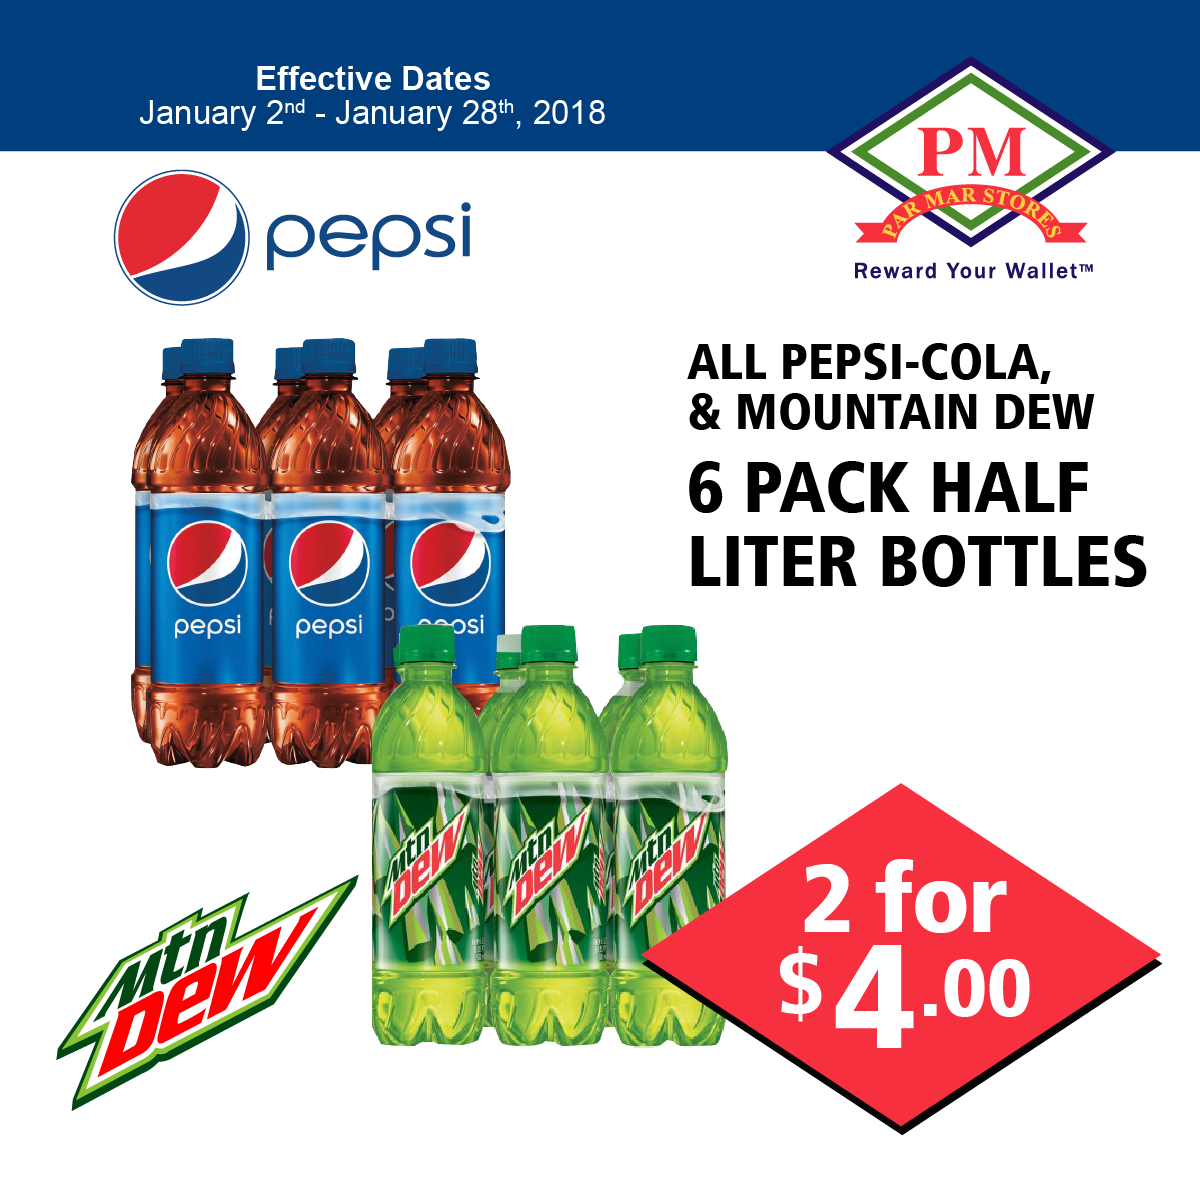 xMountain Dew and Pepsi3